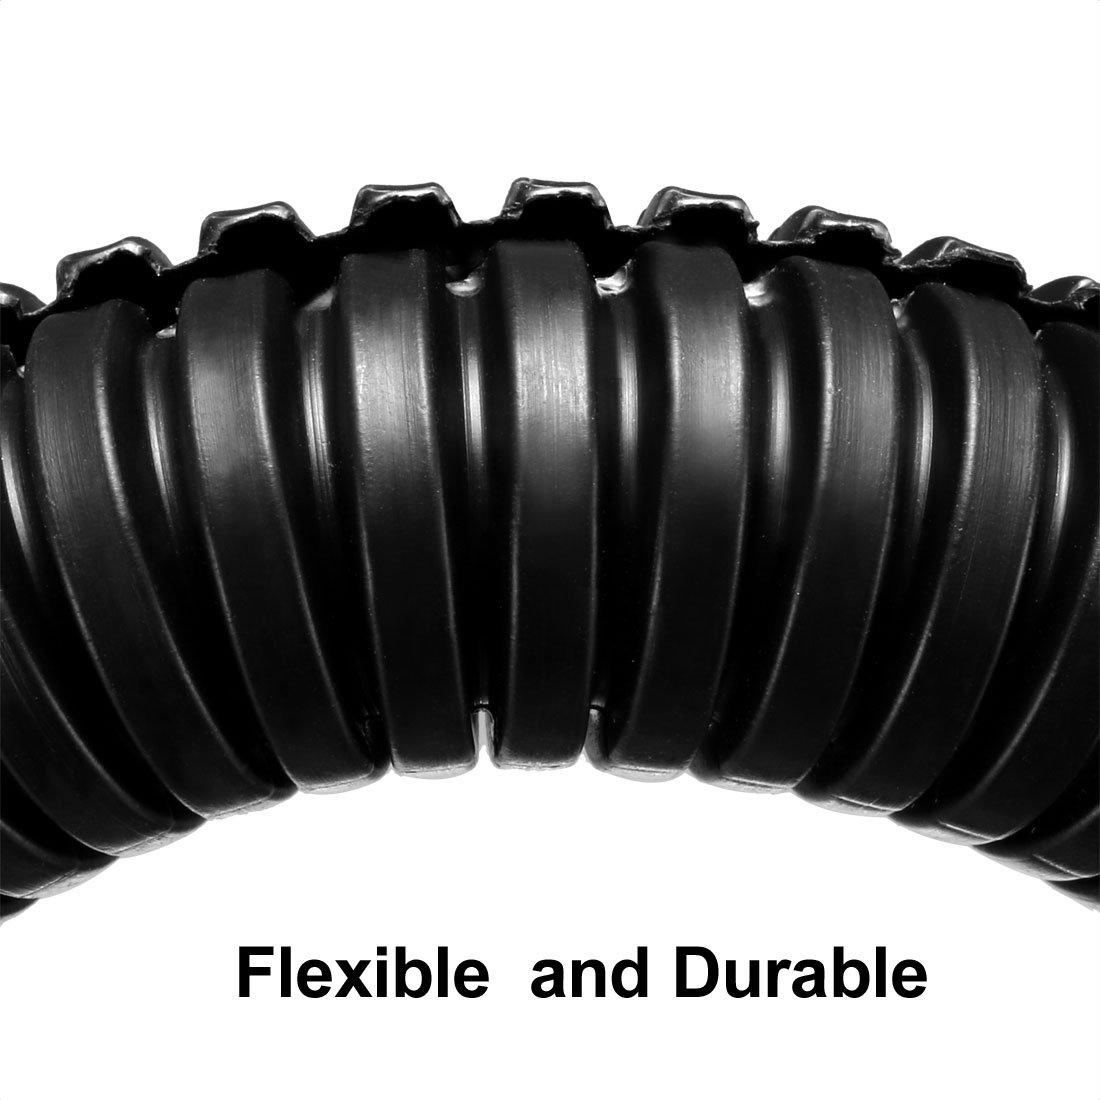 uxcell 1.5M Length 13mm Outside Dia Corrugated Bellow Conduit Tube for Electric Wiring Black a18040300ux0018